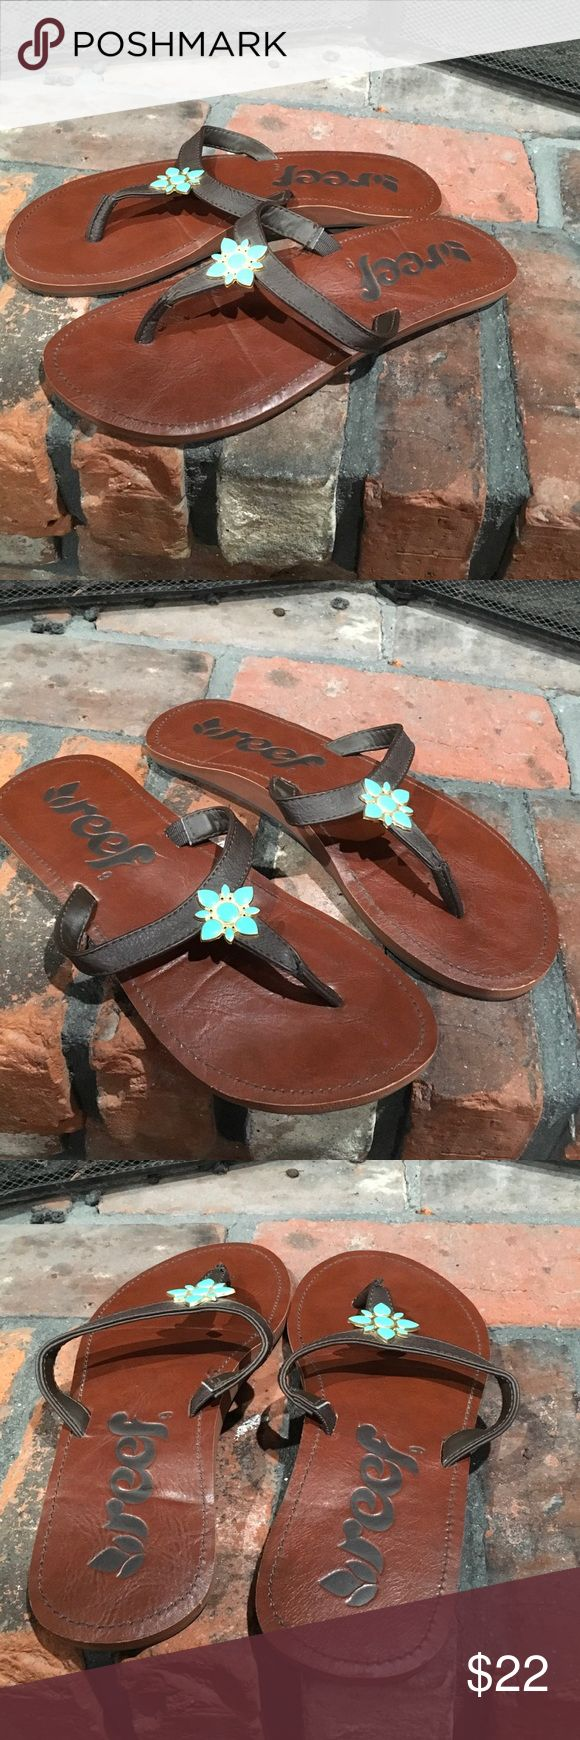 Reef NWOT flip flops size 9 Reef NWOT flip flops size 9.  Pretty brown flip flops with turquoise color embellishment.  Super cute. New without tags Reef Shoes Sandals